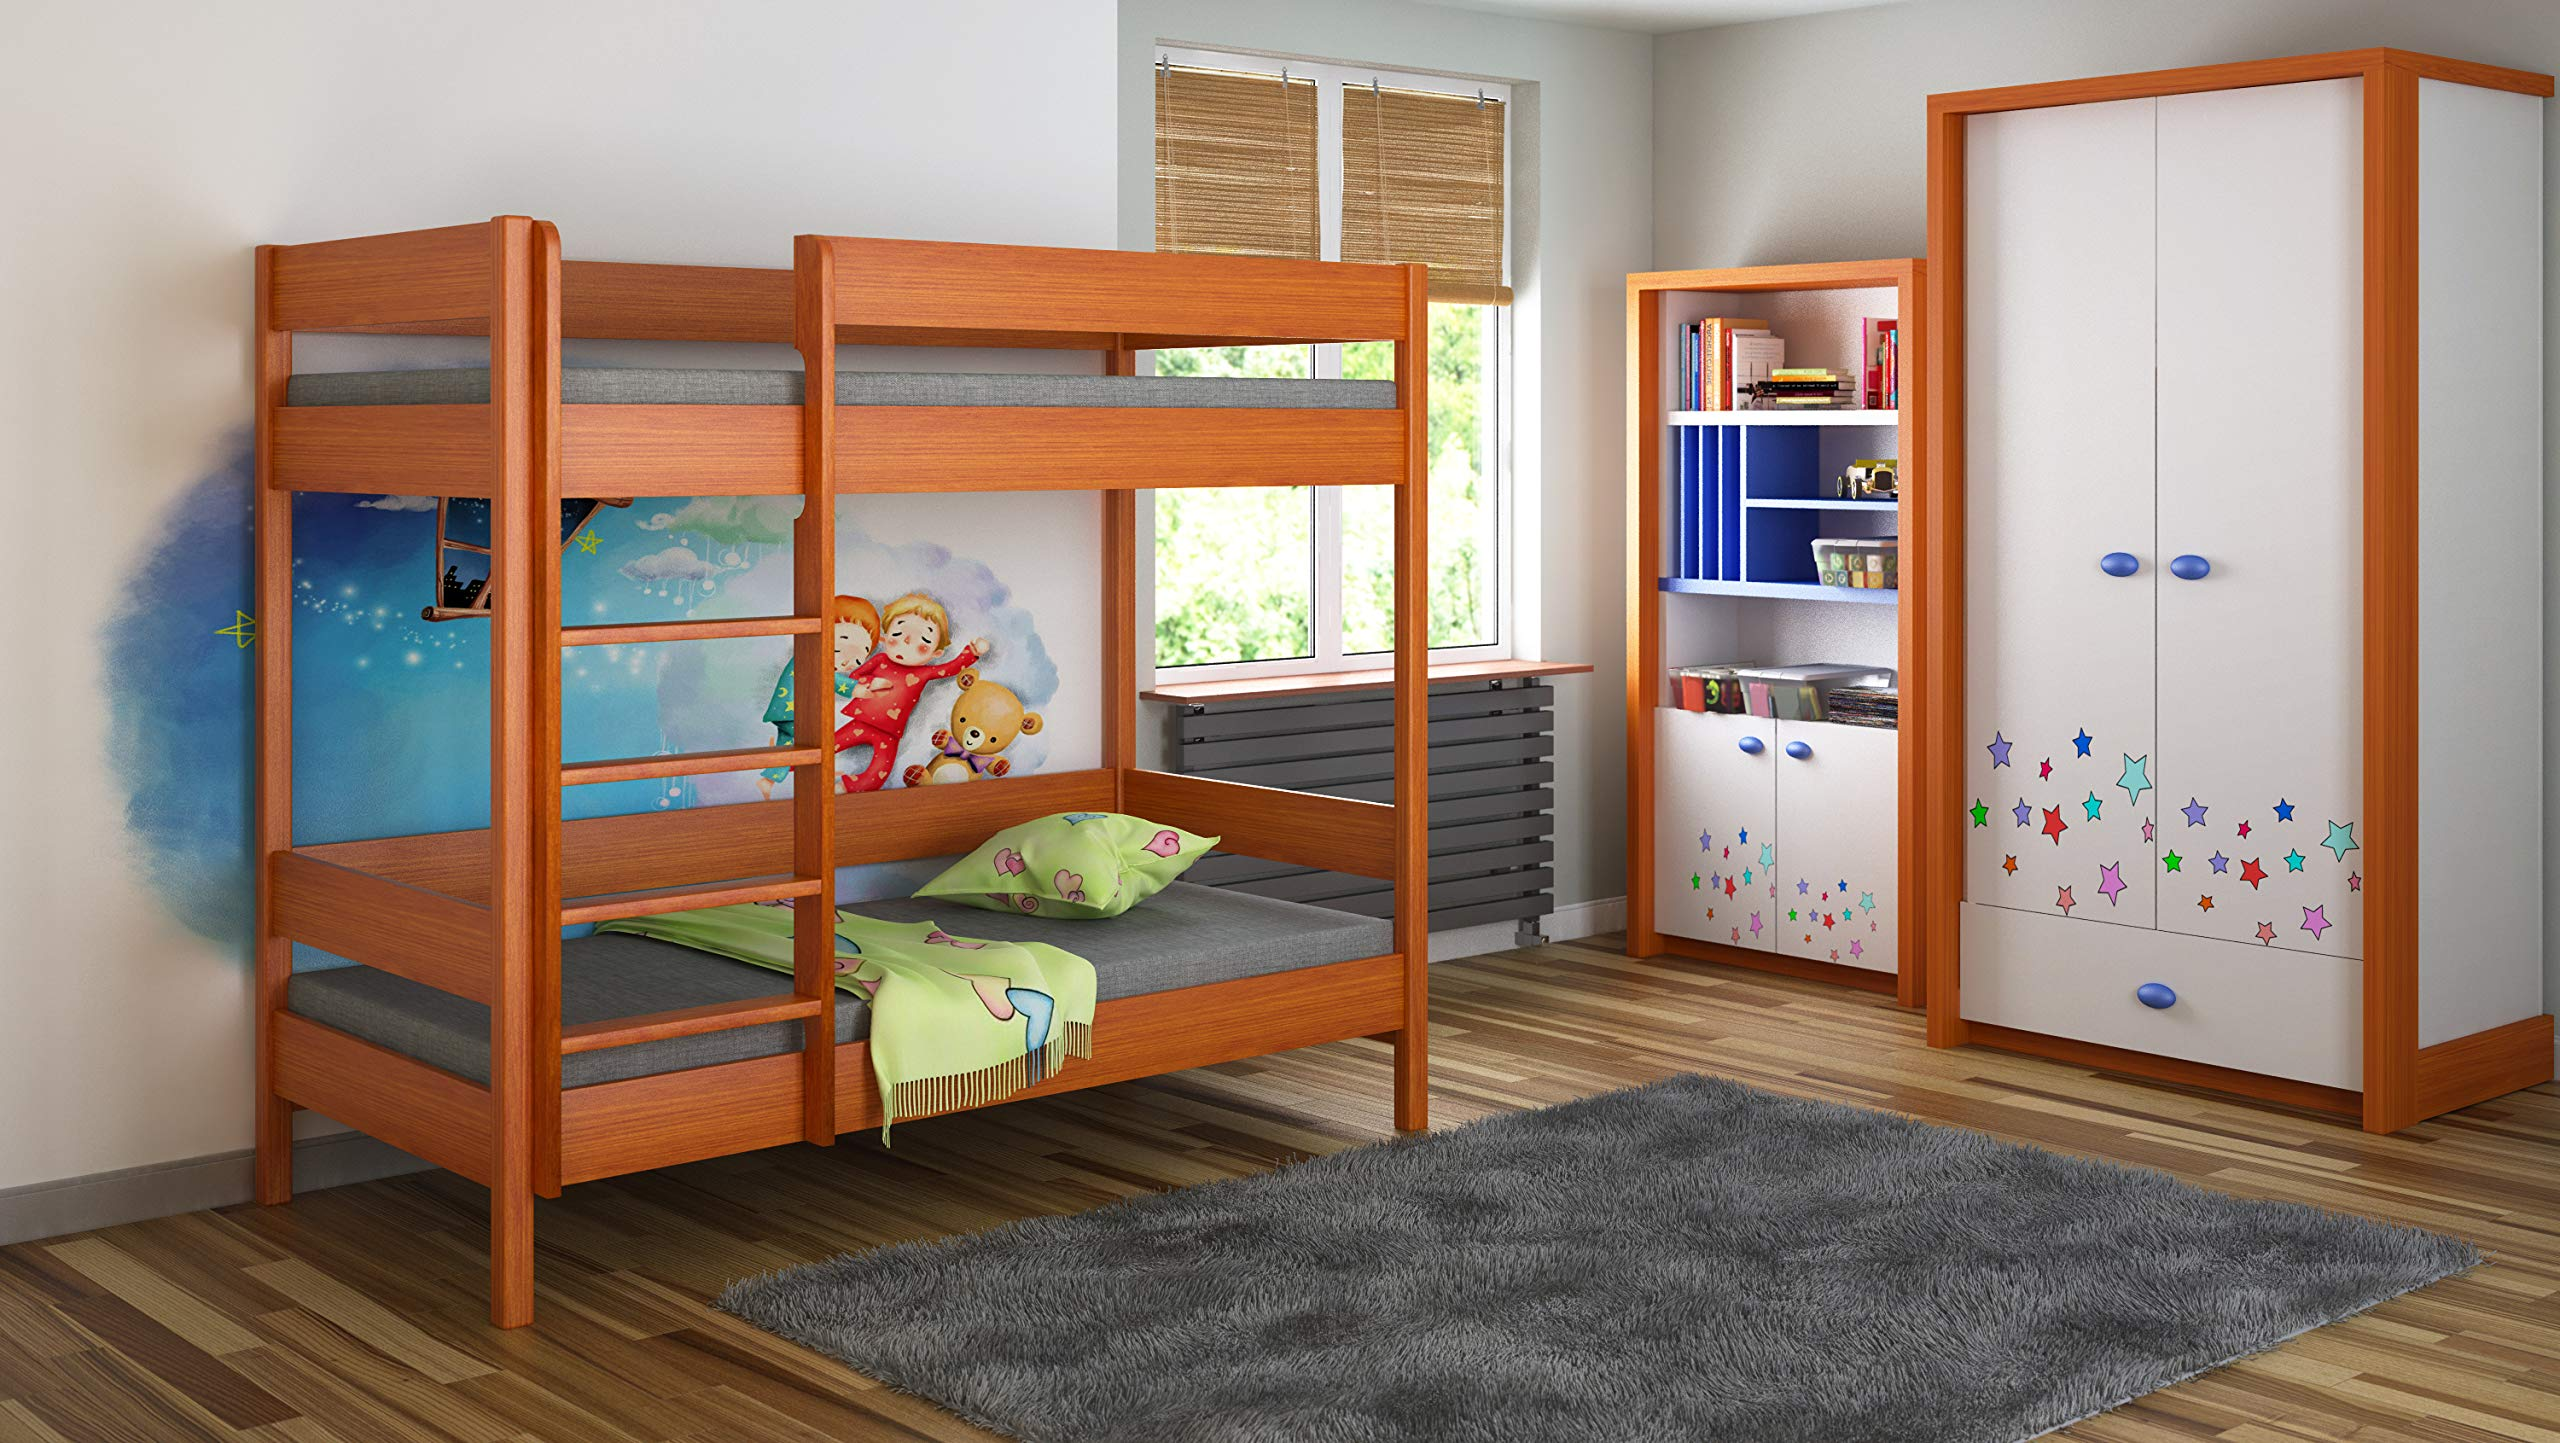 Children's Beds Home Bunk Beds - Kids Children Juniors Single with 2 Foam Mattress but No Drawers (200x90, Alder) Children's Beds Home Bed with barriers internal dimensions: 140x70x160, 160x80x160, 180x80x160, 180x90x160, 200x90x160. External dimensions: 147x77x160, 167x87x160, 187x87x160, 187x97x160, 207x97x160 Bunk Bed with access from the - Front (D-1), Universal bed entrance - left or right side. 2